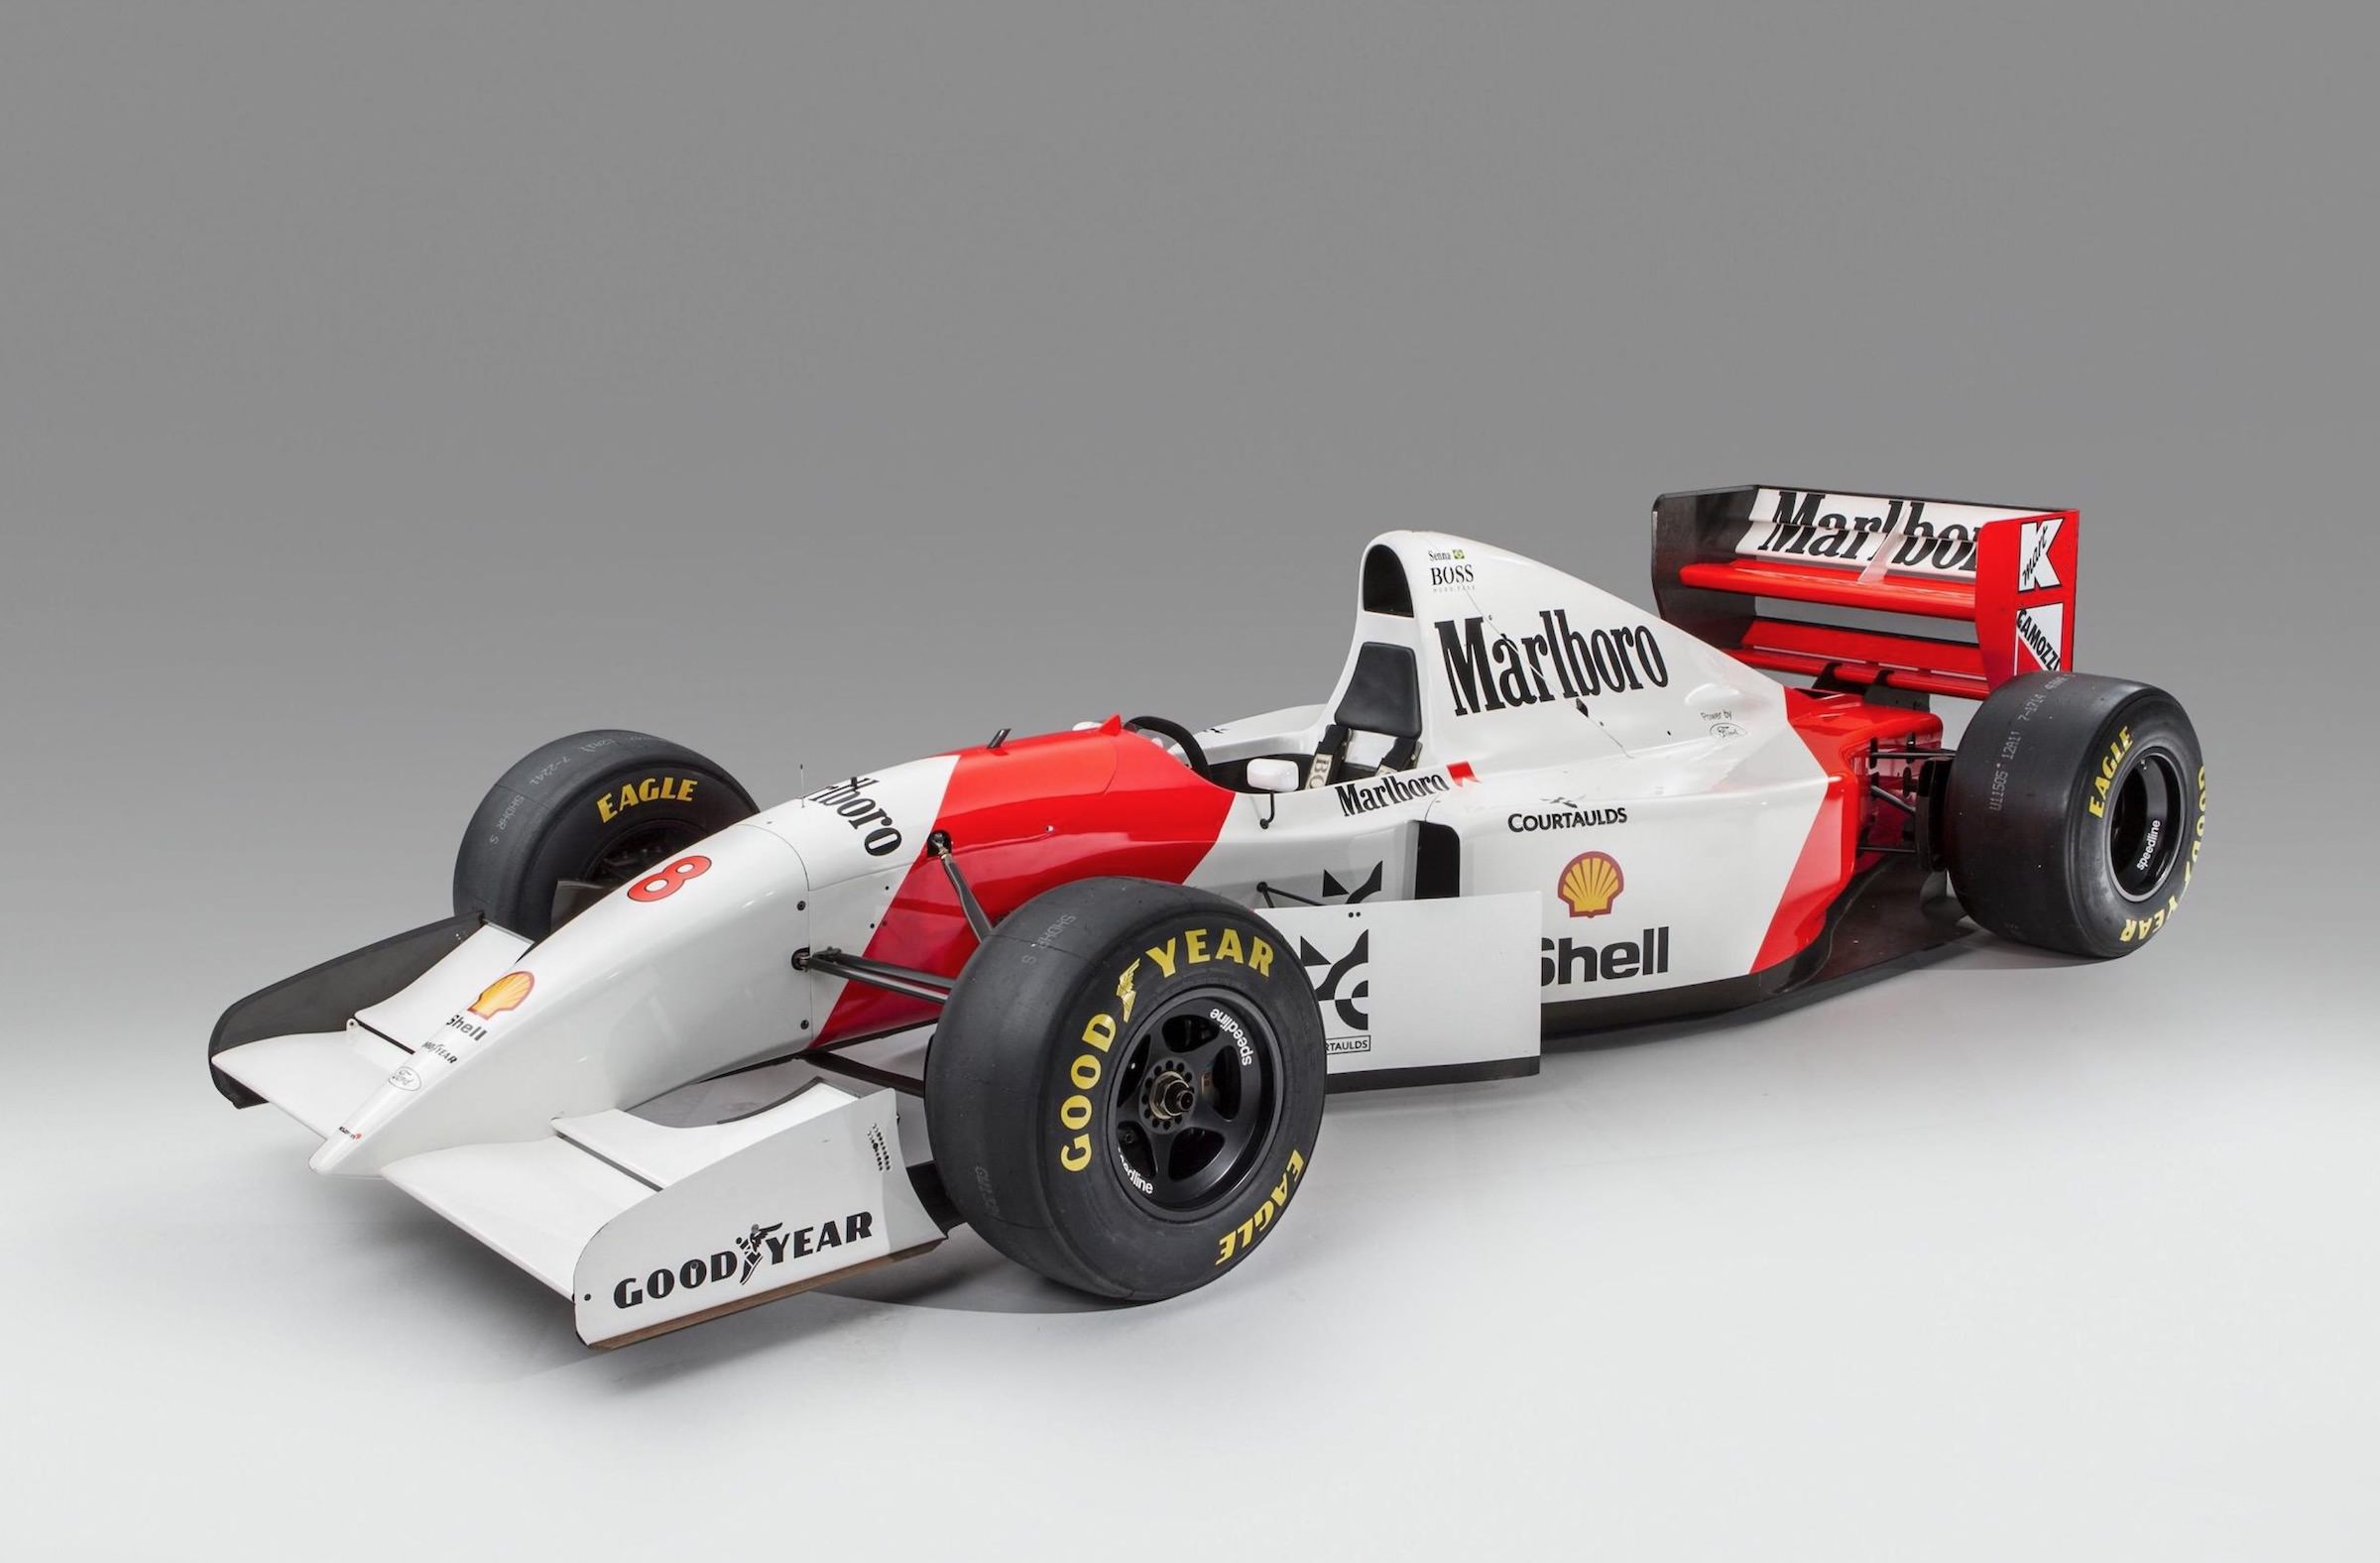 ayrton sennas original 1993 mclaren mp48 formula 1 car